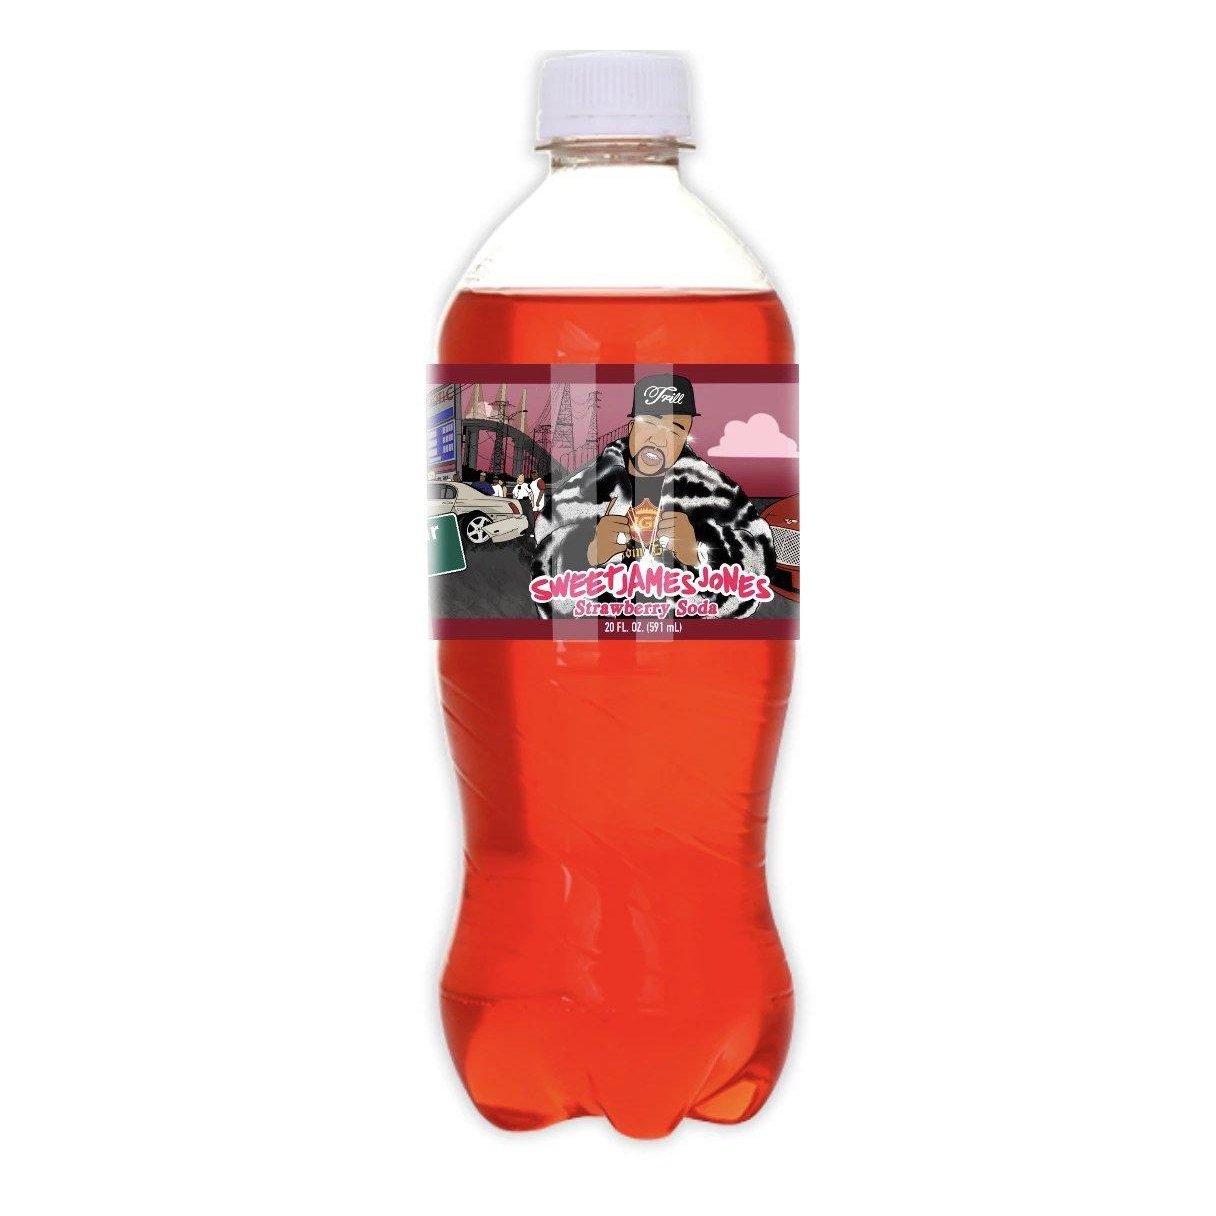 Exotic Pop Sweet James Jones Strawberry Soda-Exotic Pop